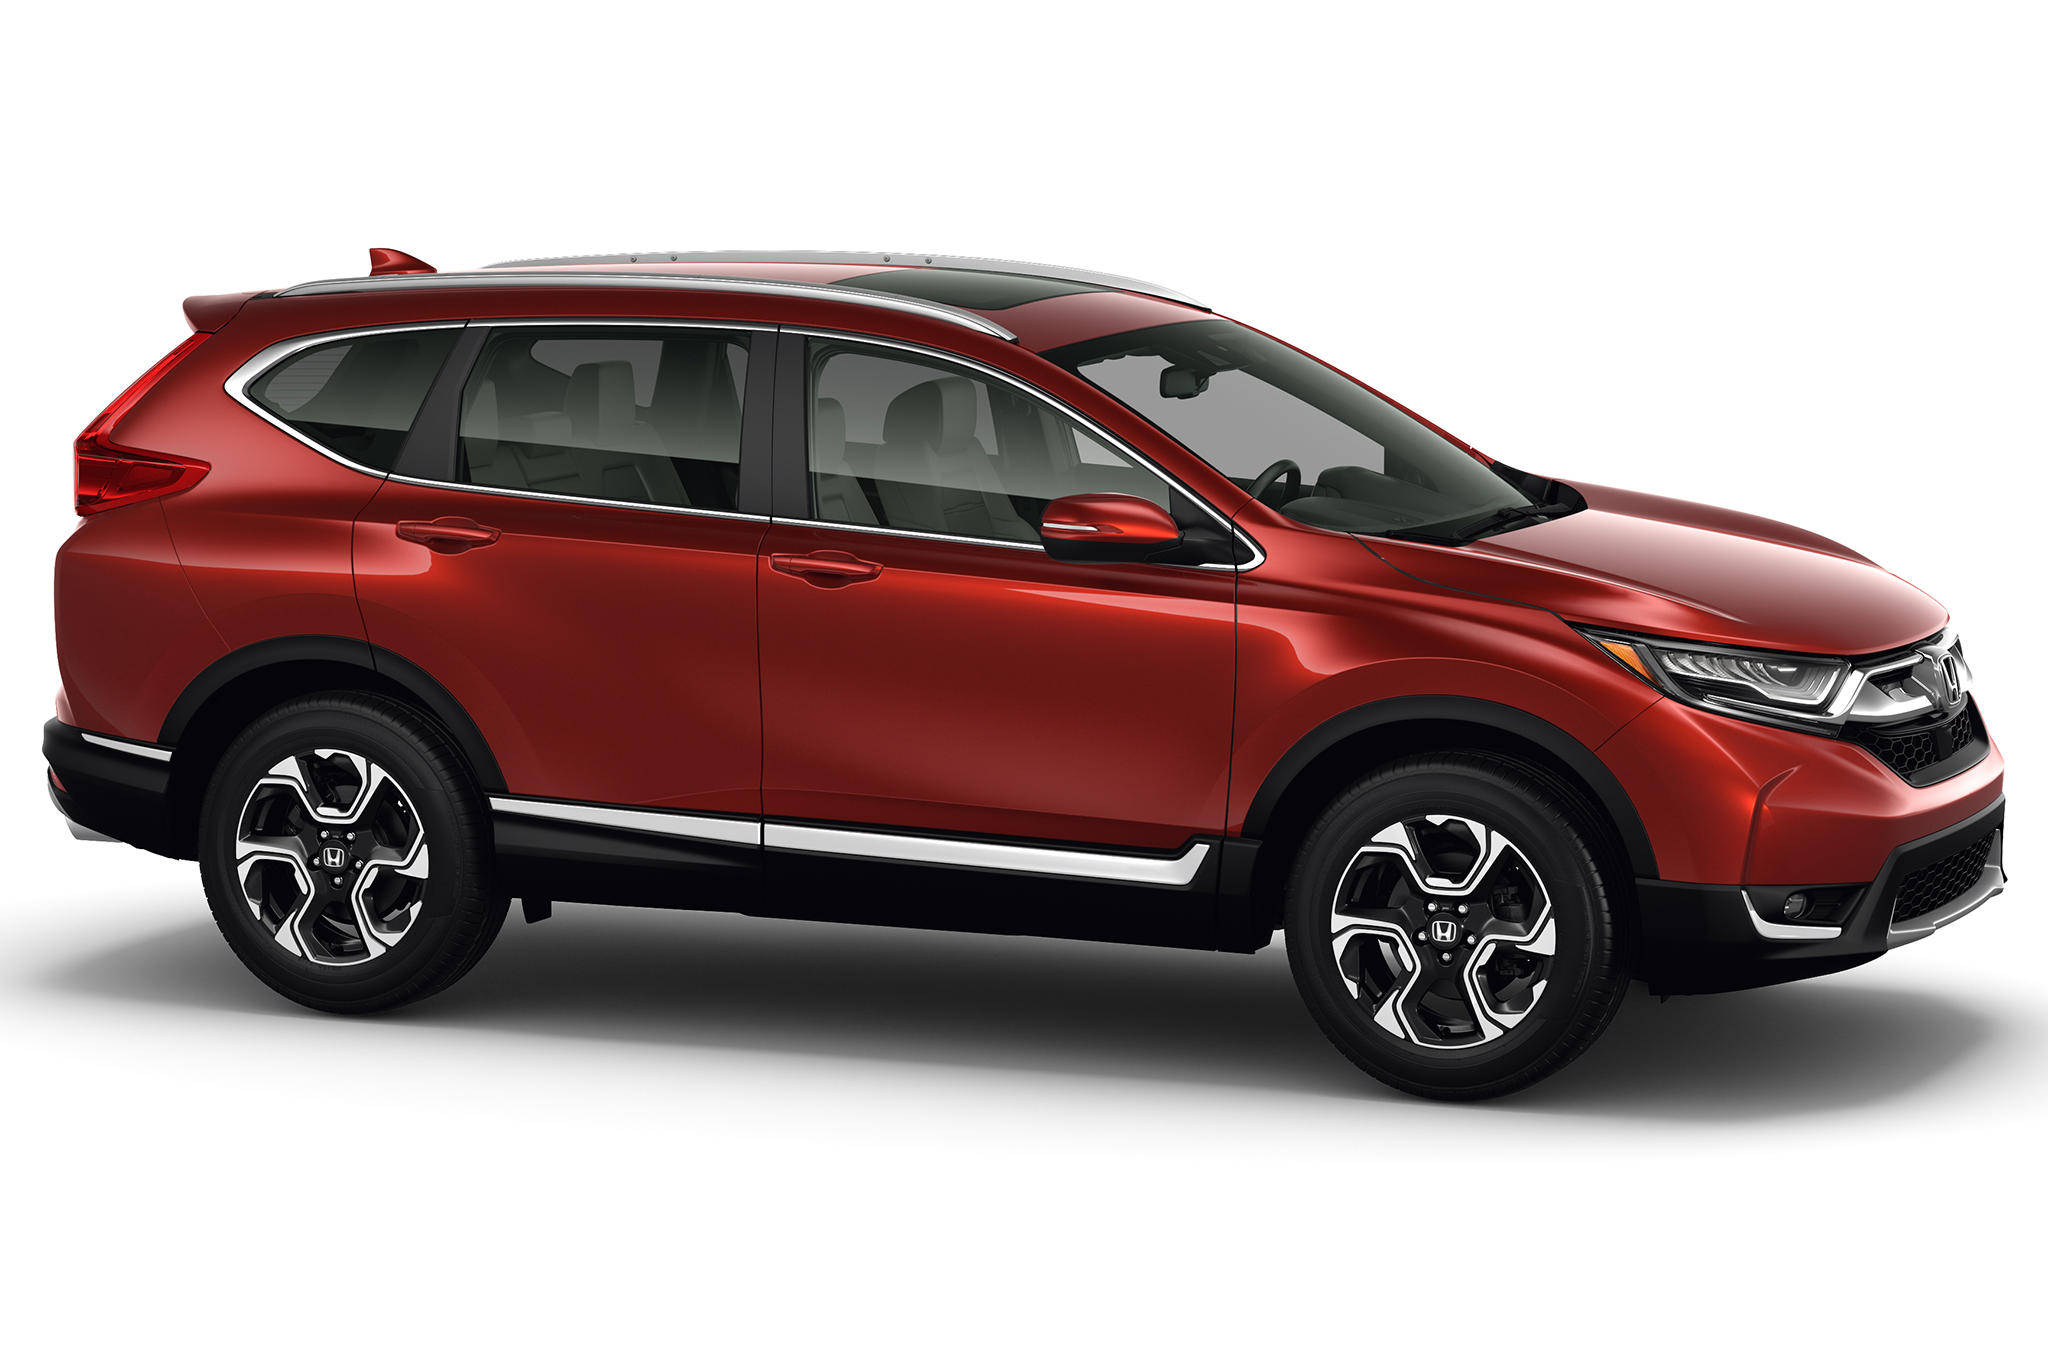 2017-honda-cr-v-side-1